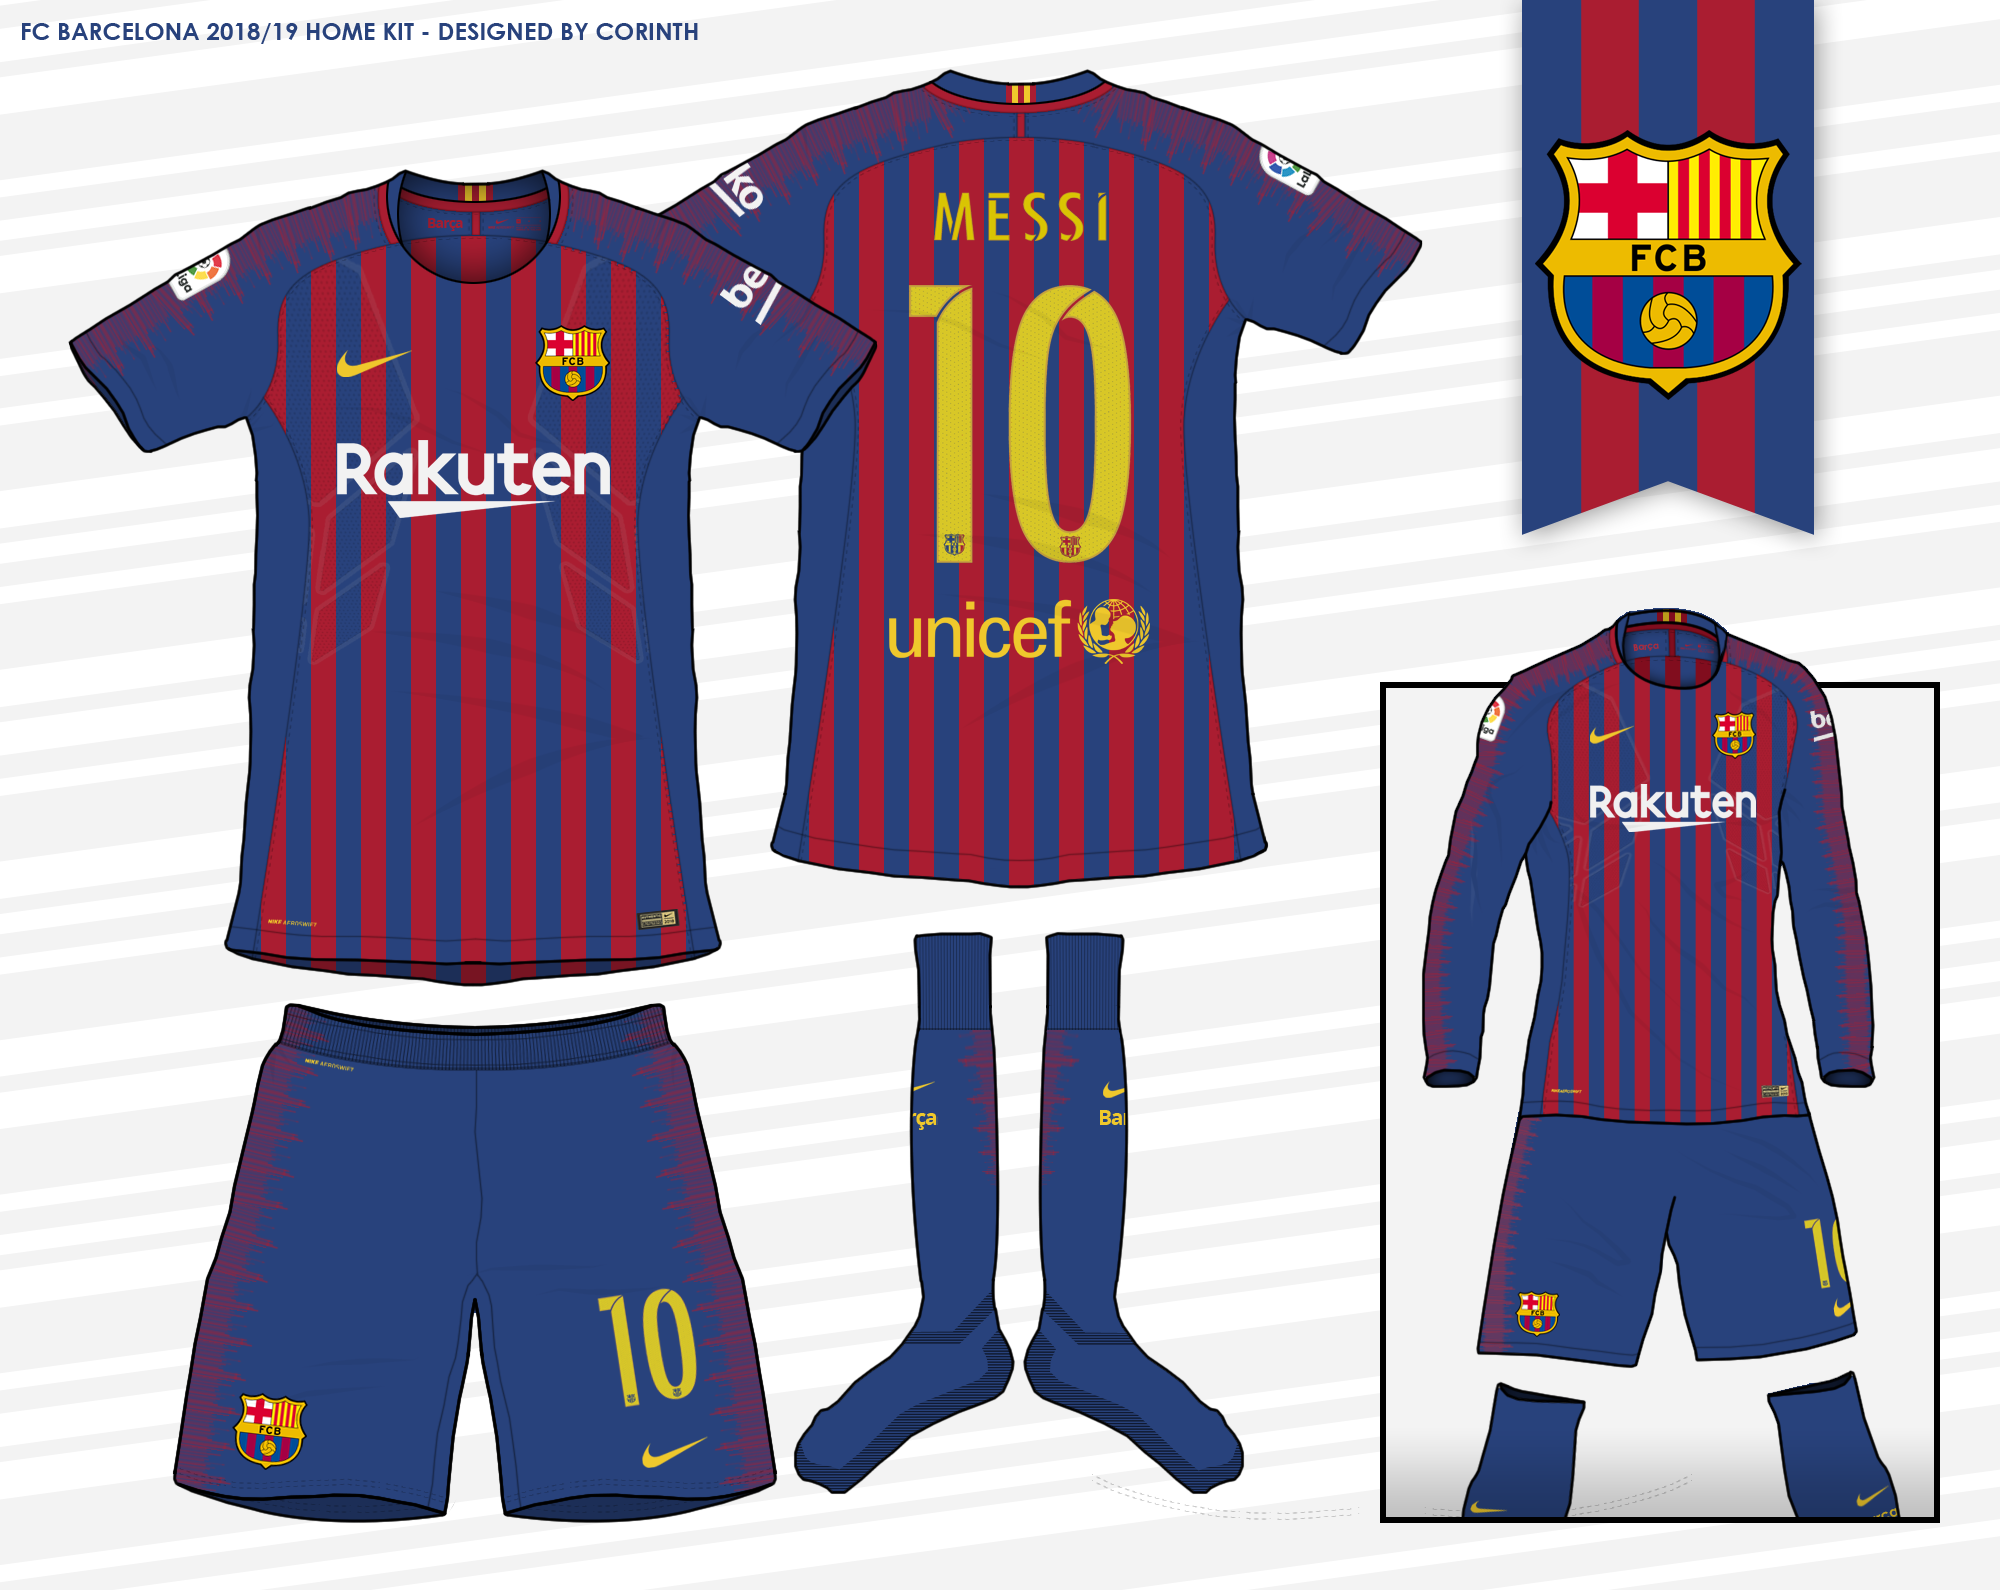 new product 61c75 ece6d FC Barcelona - 2018 / 2019 Home Kit (According to leaks)